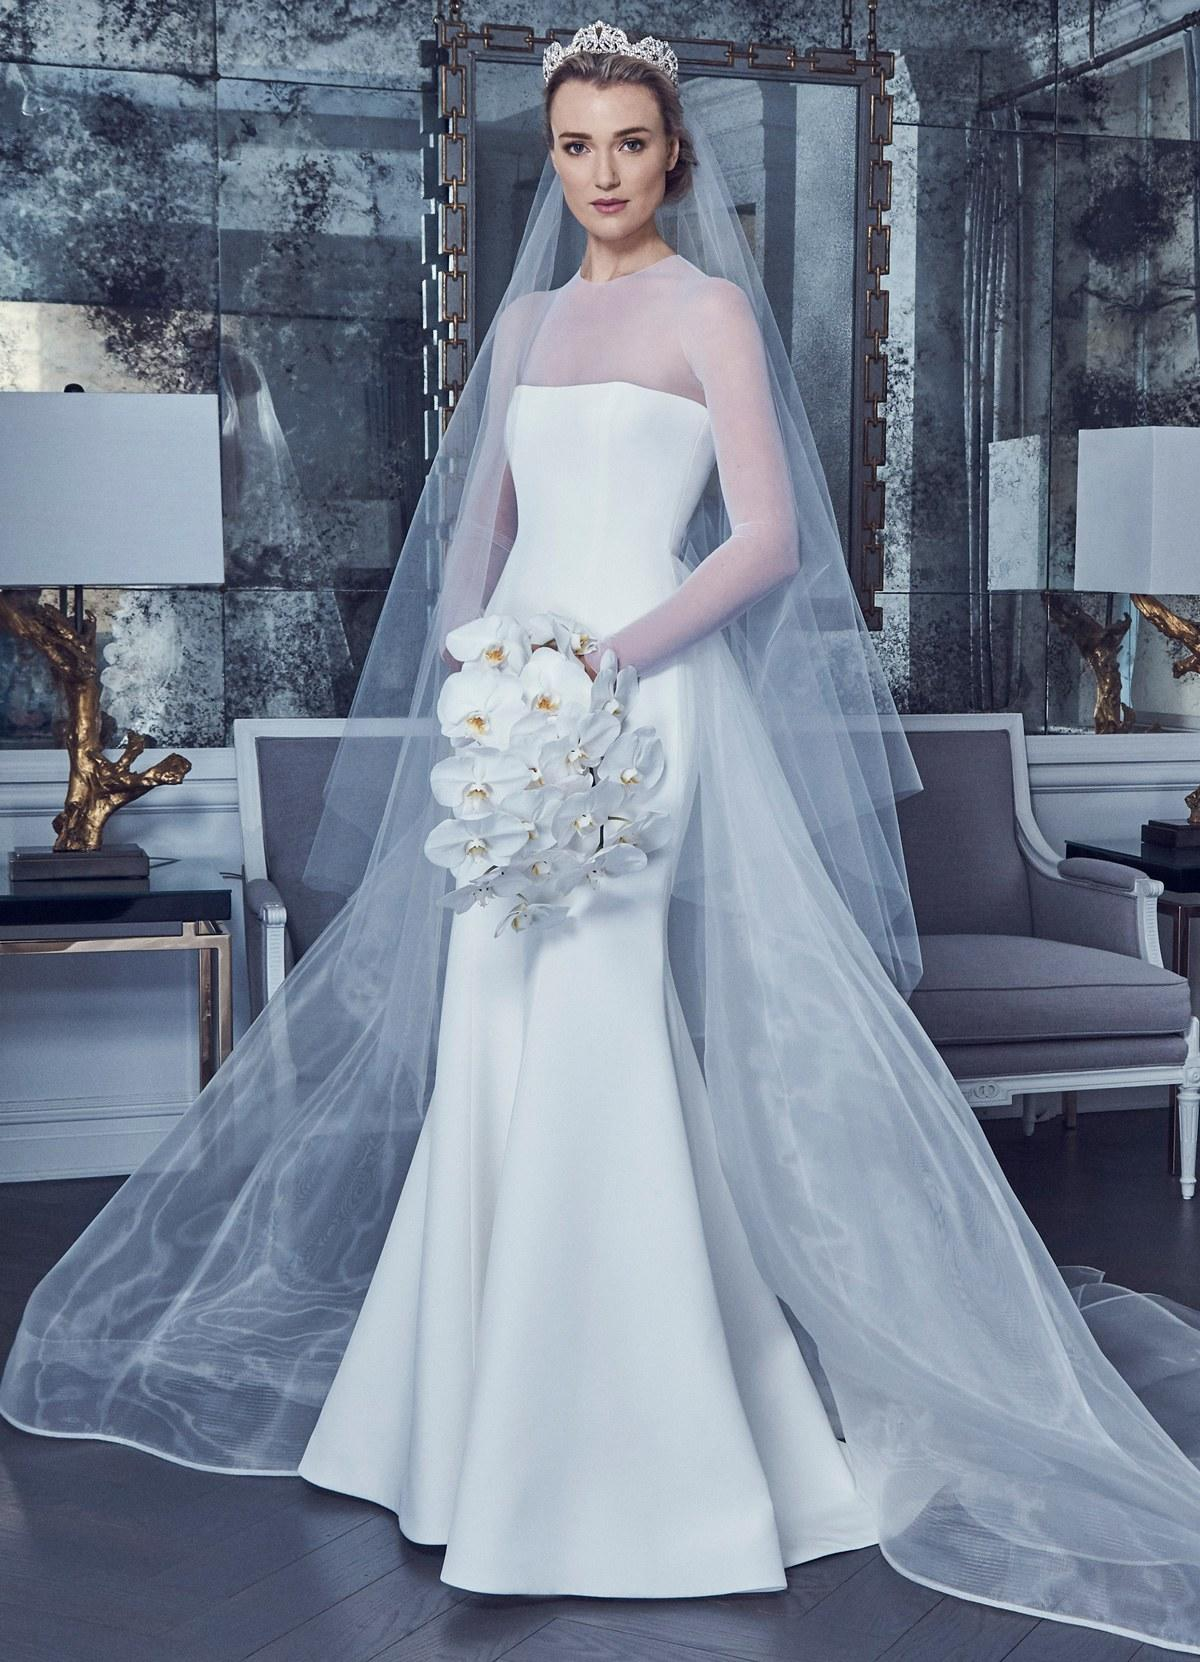 Luxury Princess Kate Wedding Gown Mold - All Wedding Dresses ...